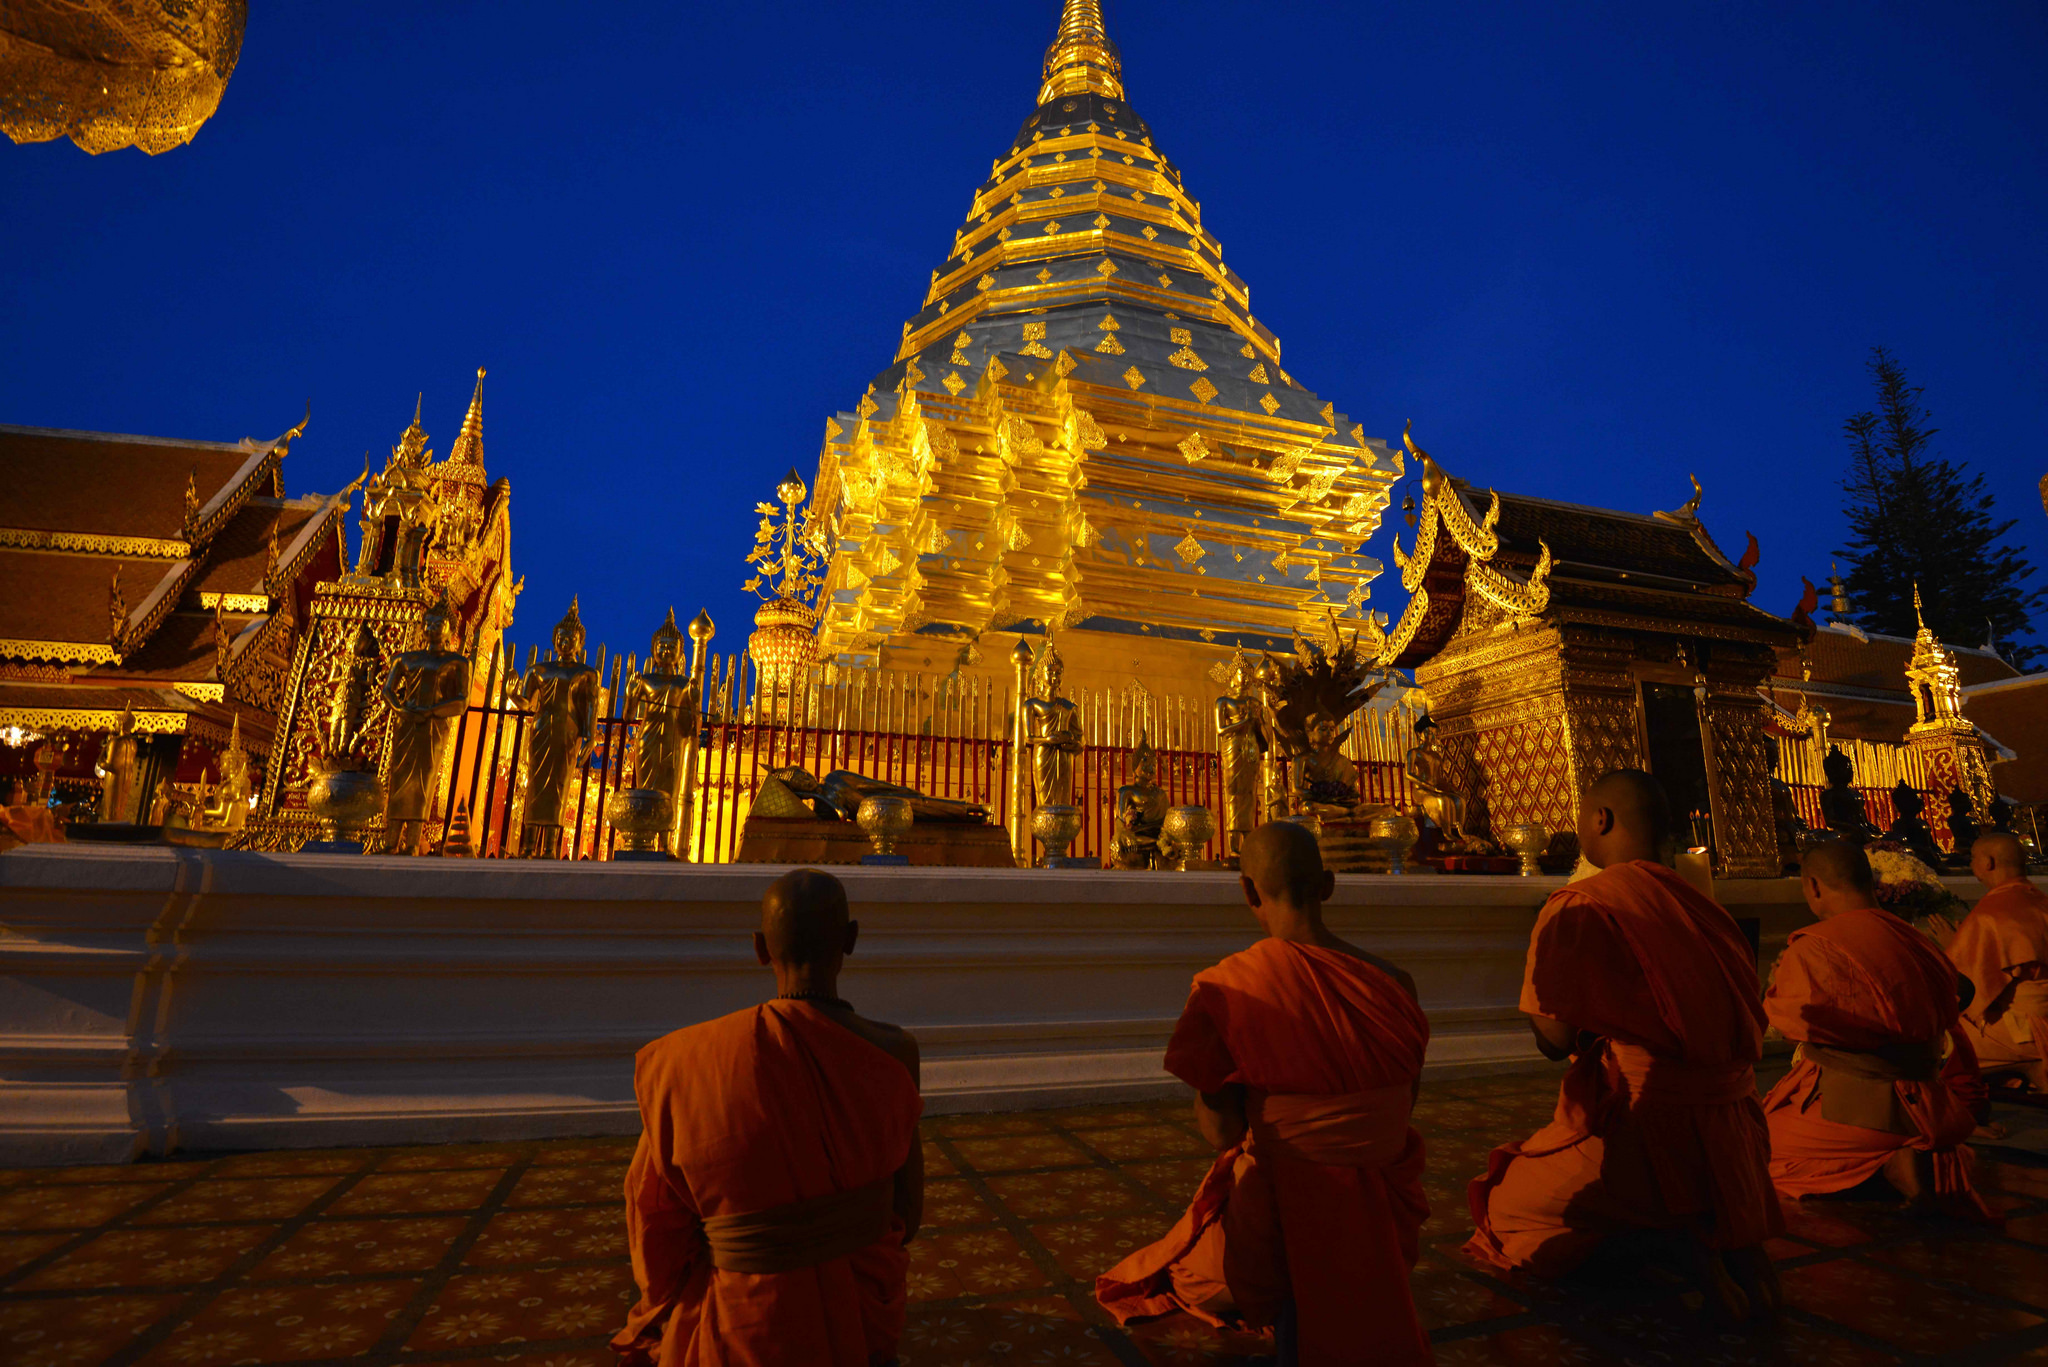 wat-phra-that-doi-suthep-thousandwonders-net